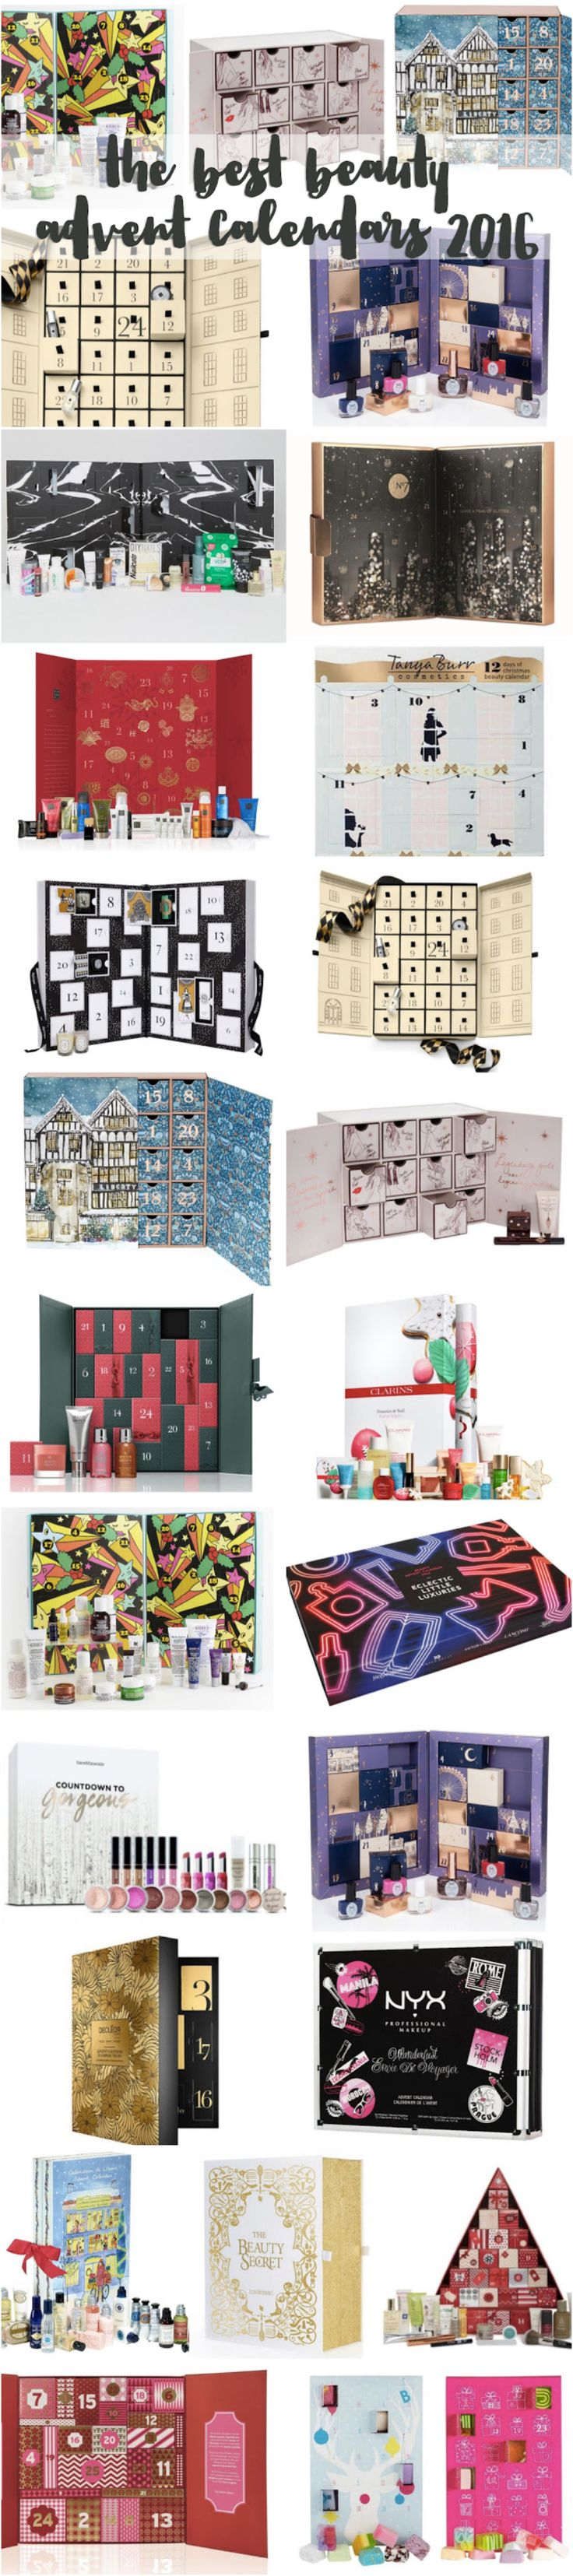 The best beauty advent calendars for Christmas 2016 - flutter and sparkle blog